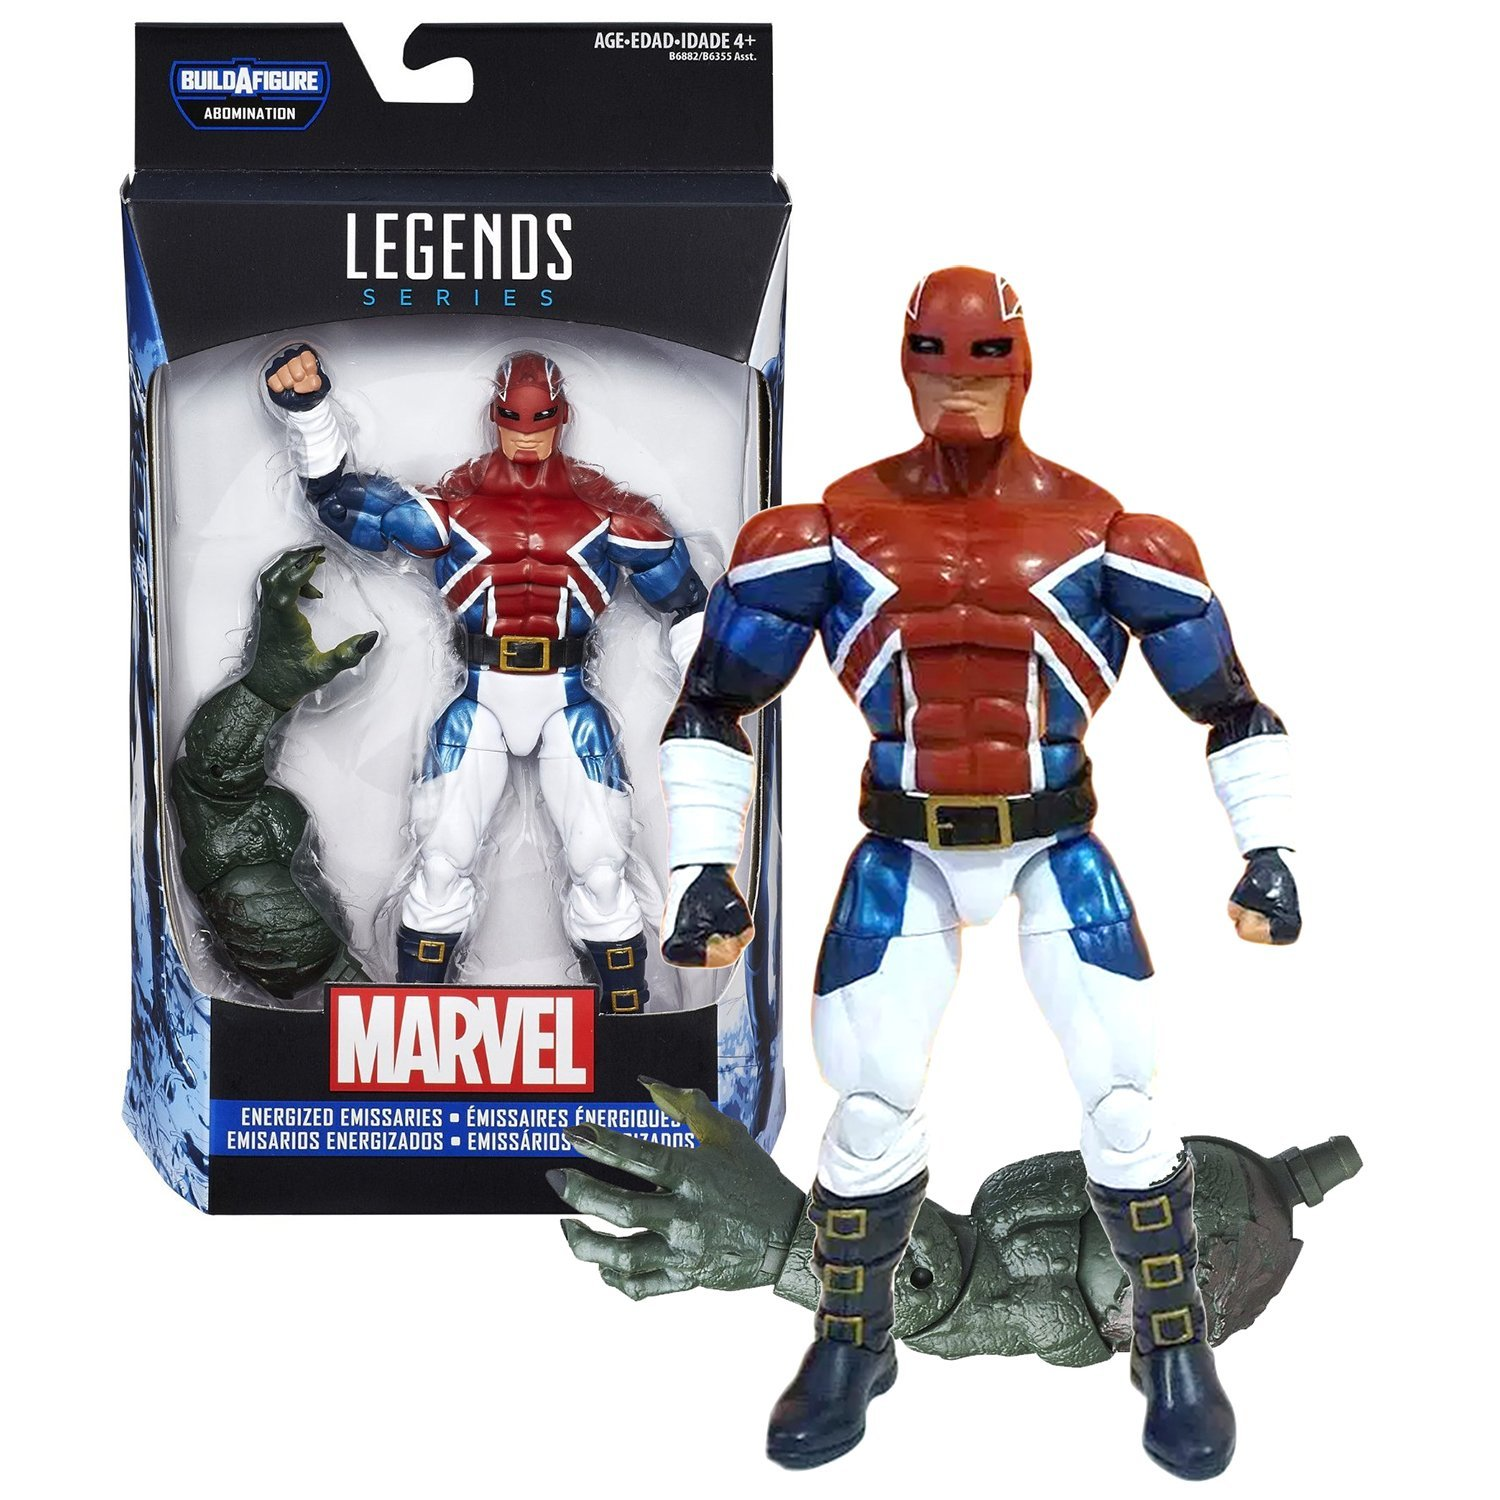 Hasbro Year 2015 Marvel Legends ABOMINATION Series 7 Inch Tall Figure - Energize